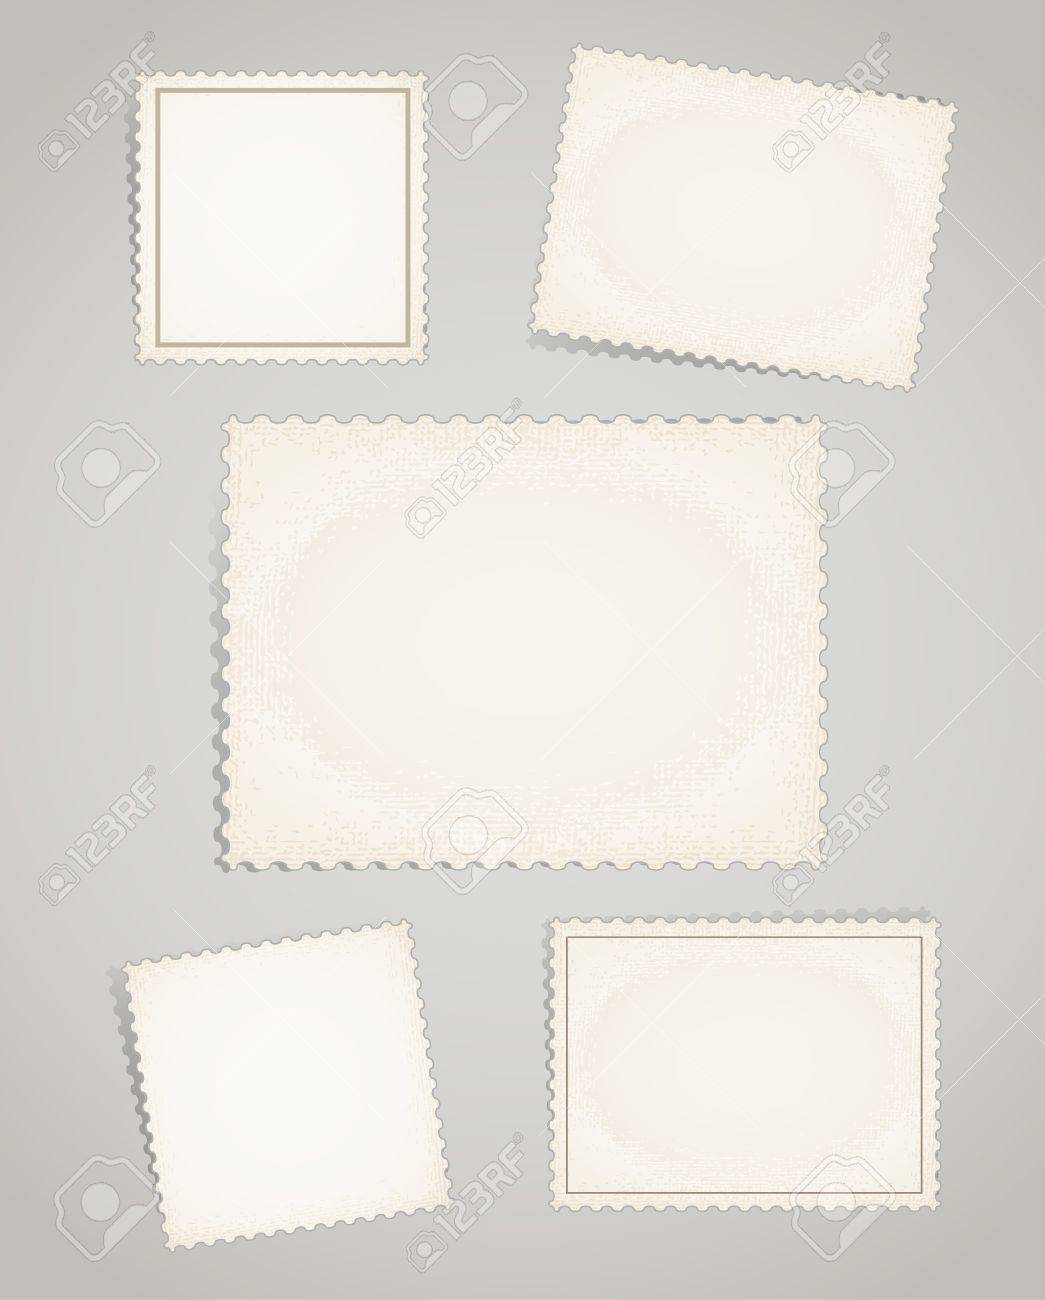 Vintage post stamps template clip-art Stock Vector - 11430996